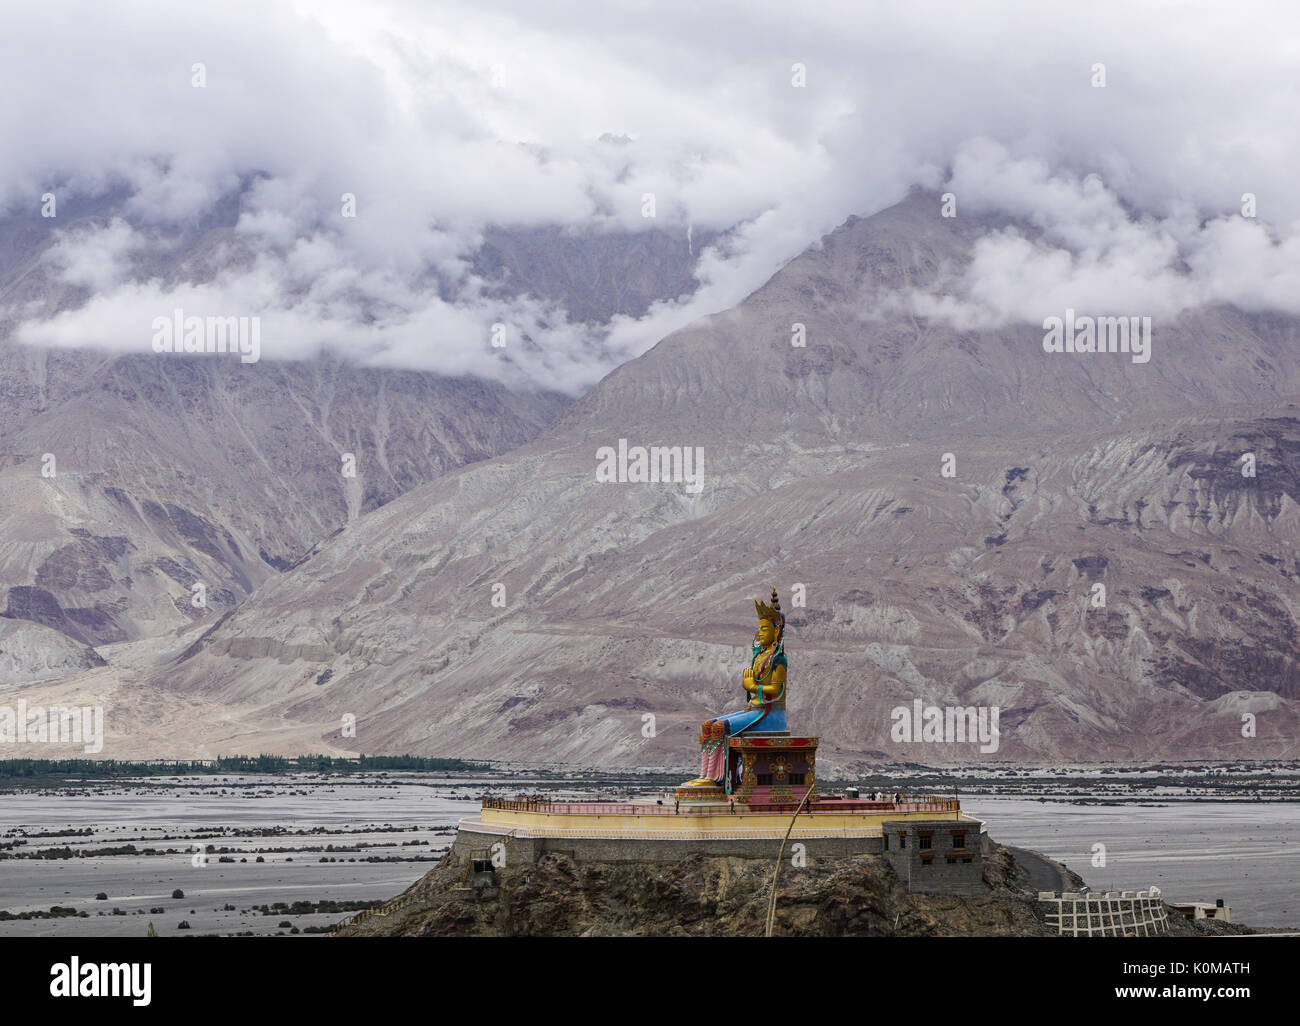 The 32 metre (106 foot) statue of Maitreya Buddha near Diskit monastery in Ladakh, India. The statue construction was started in 2006. - Stock Image